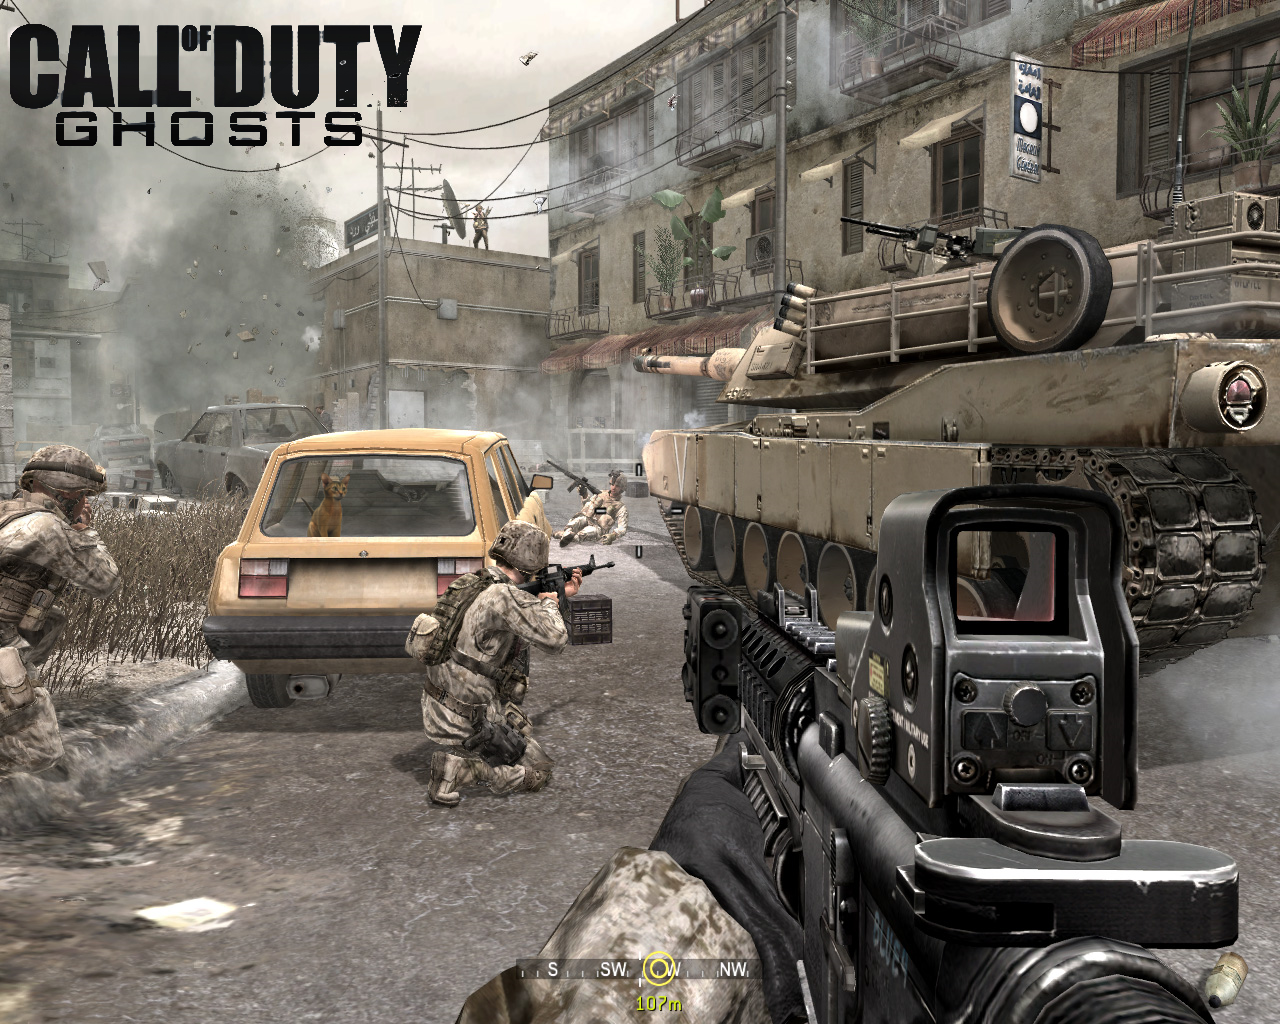 Pin by FuTurXTV on Call Of Duty Ghosts Activision